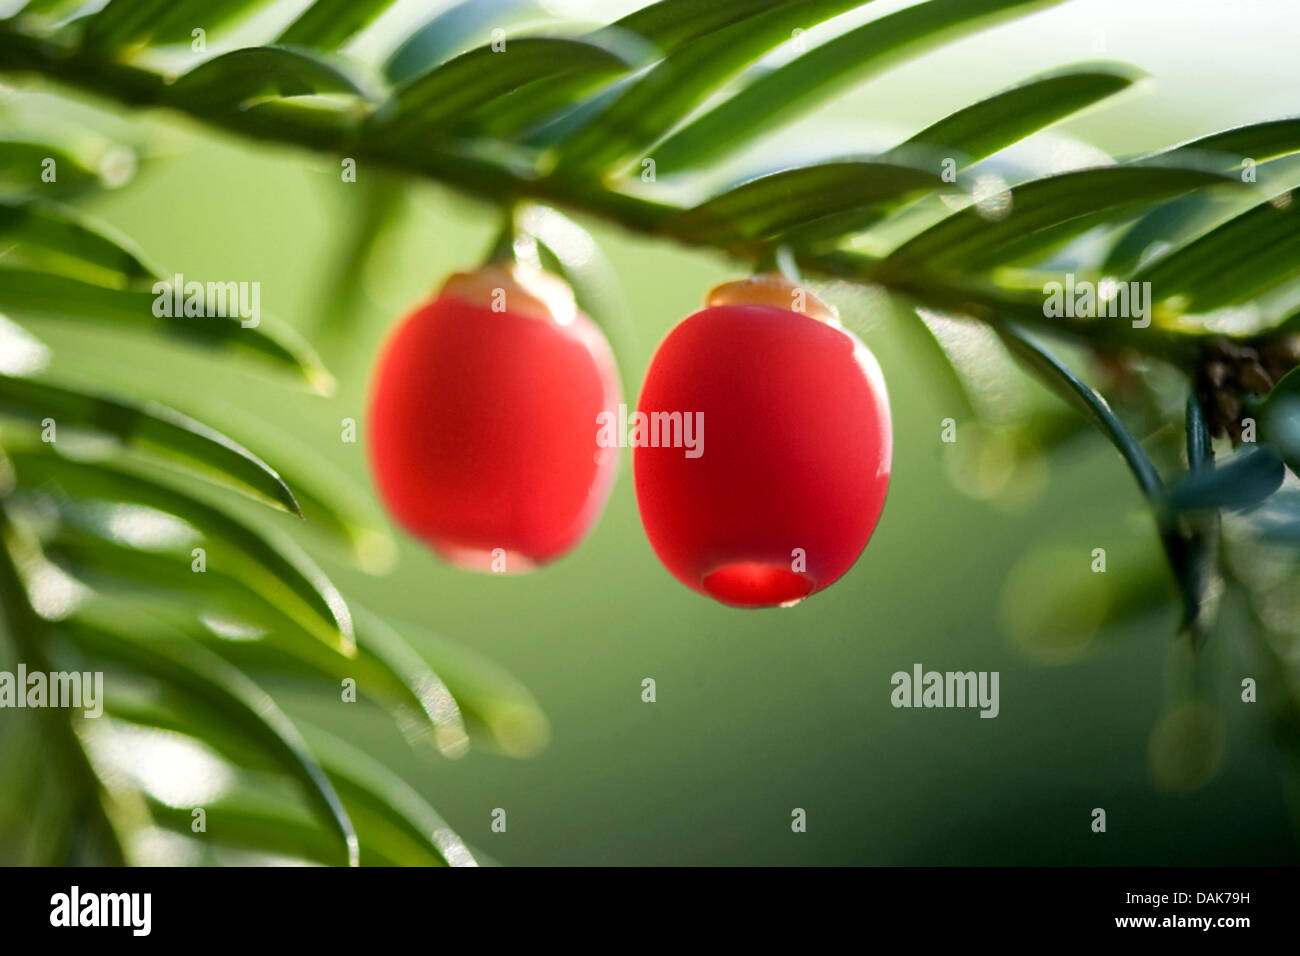 common yew (Taxus baccata), branch with mature seeds, Germany - Stock Image